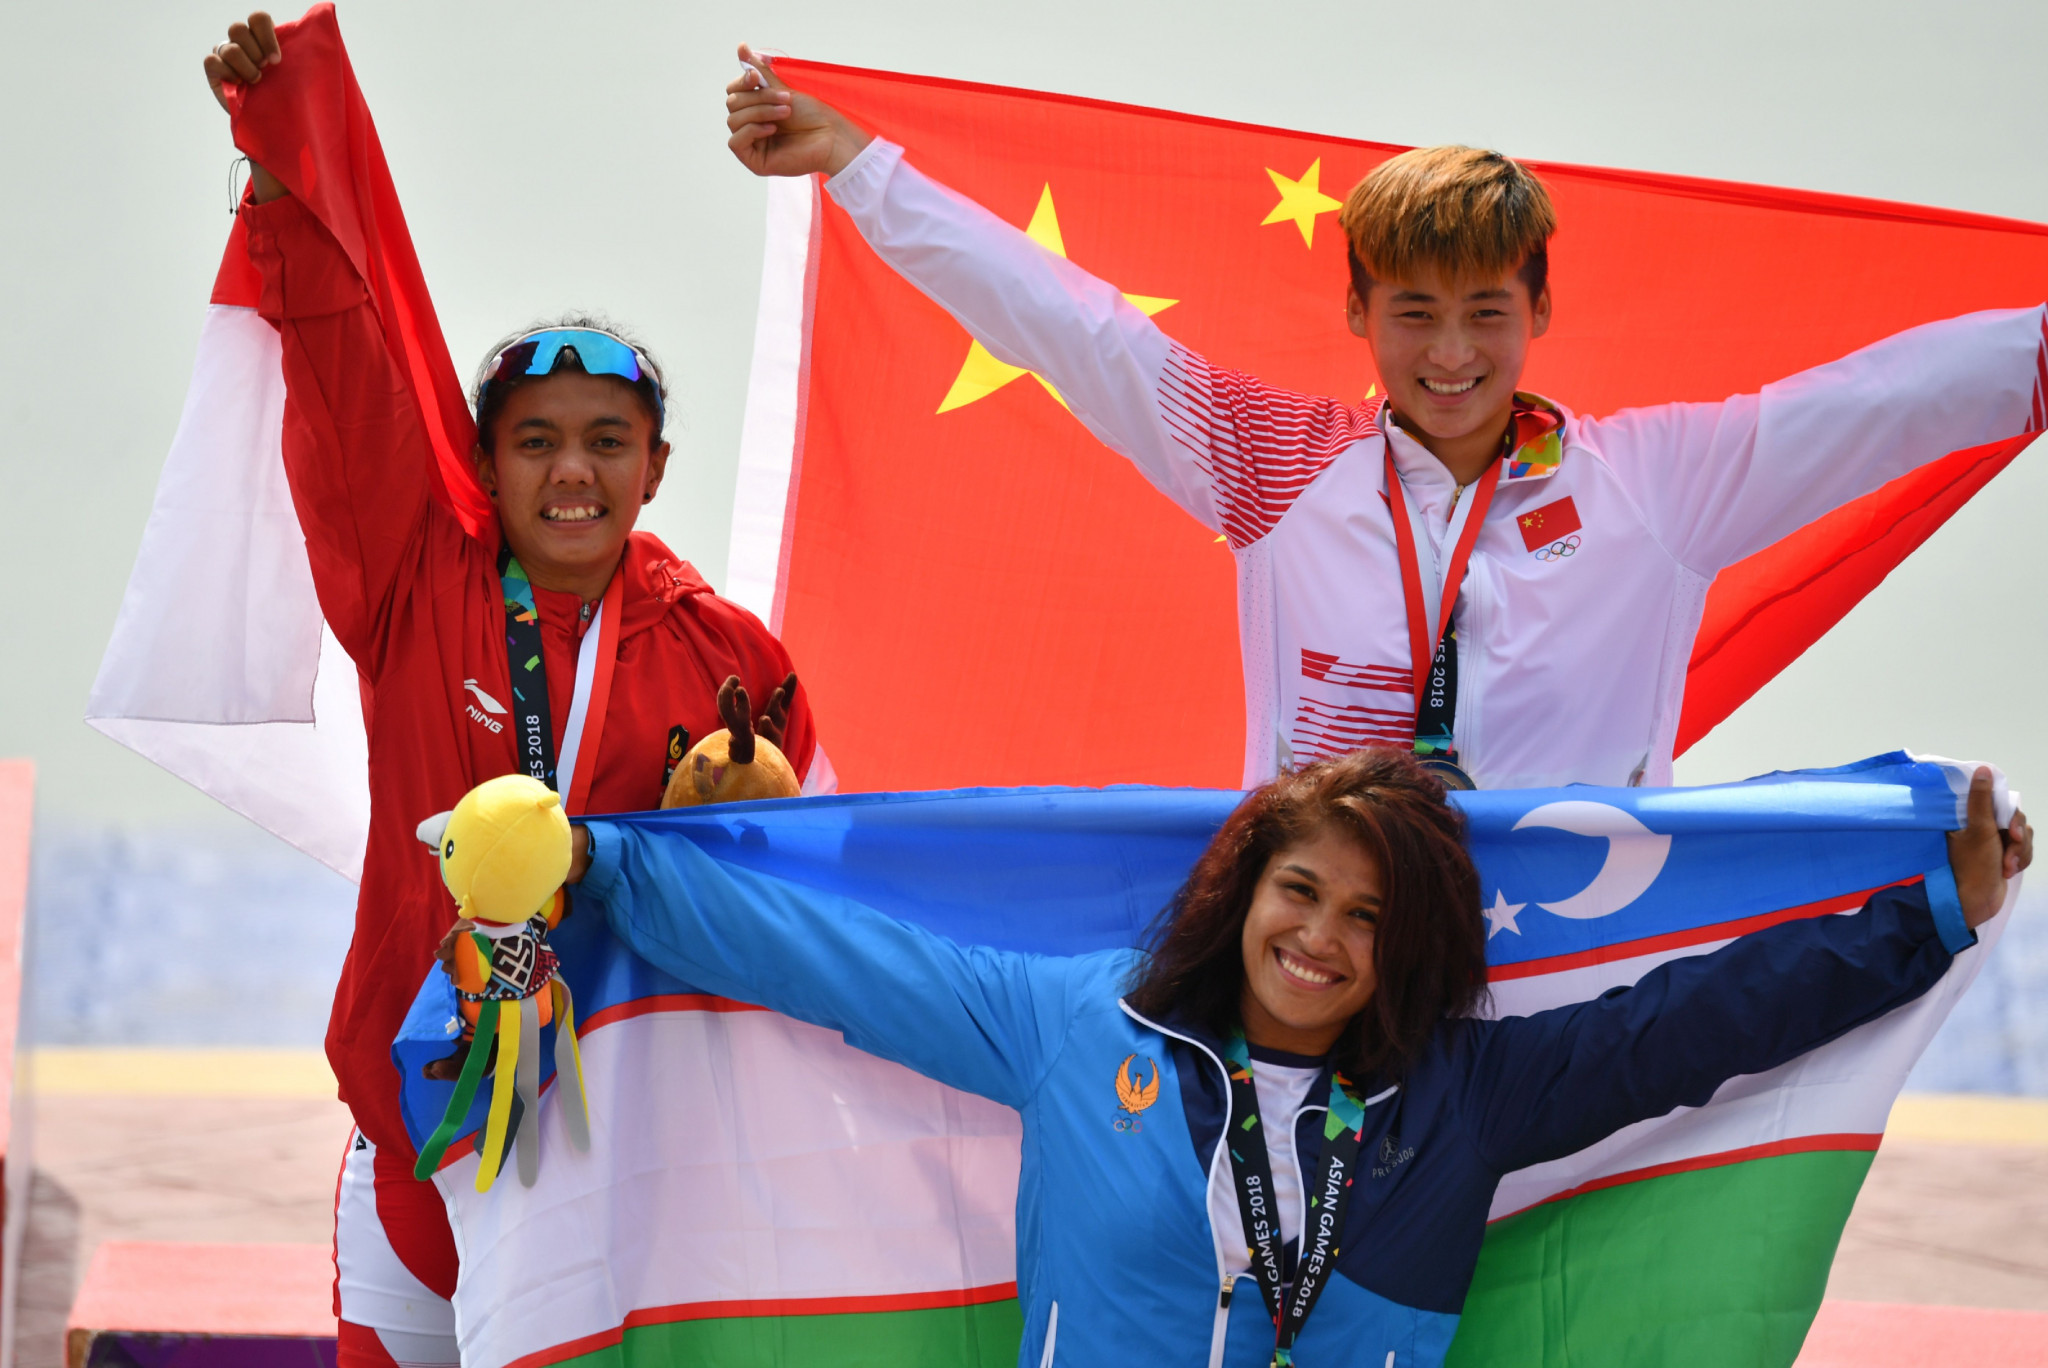 Dilnoza Rakhmatov, pictured centre after winning canoe sprint bronze at the 2018 Asian Games, has been named Uzbekistan's Female Athlete of 2019 at the end of a year where she earned world bronze in the C2-200m doubles event.